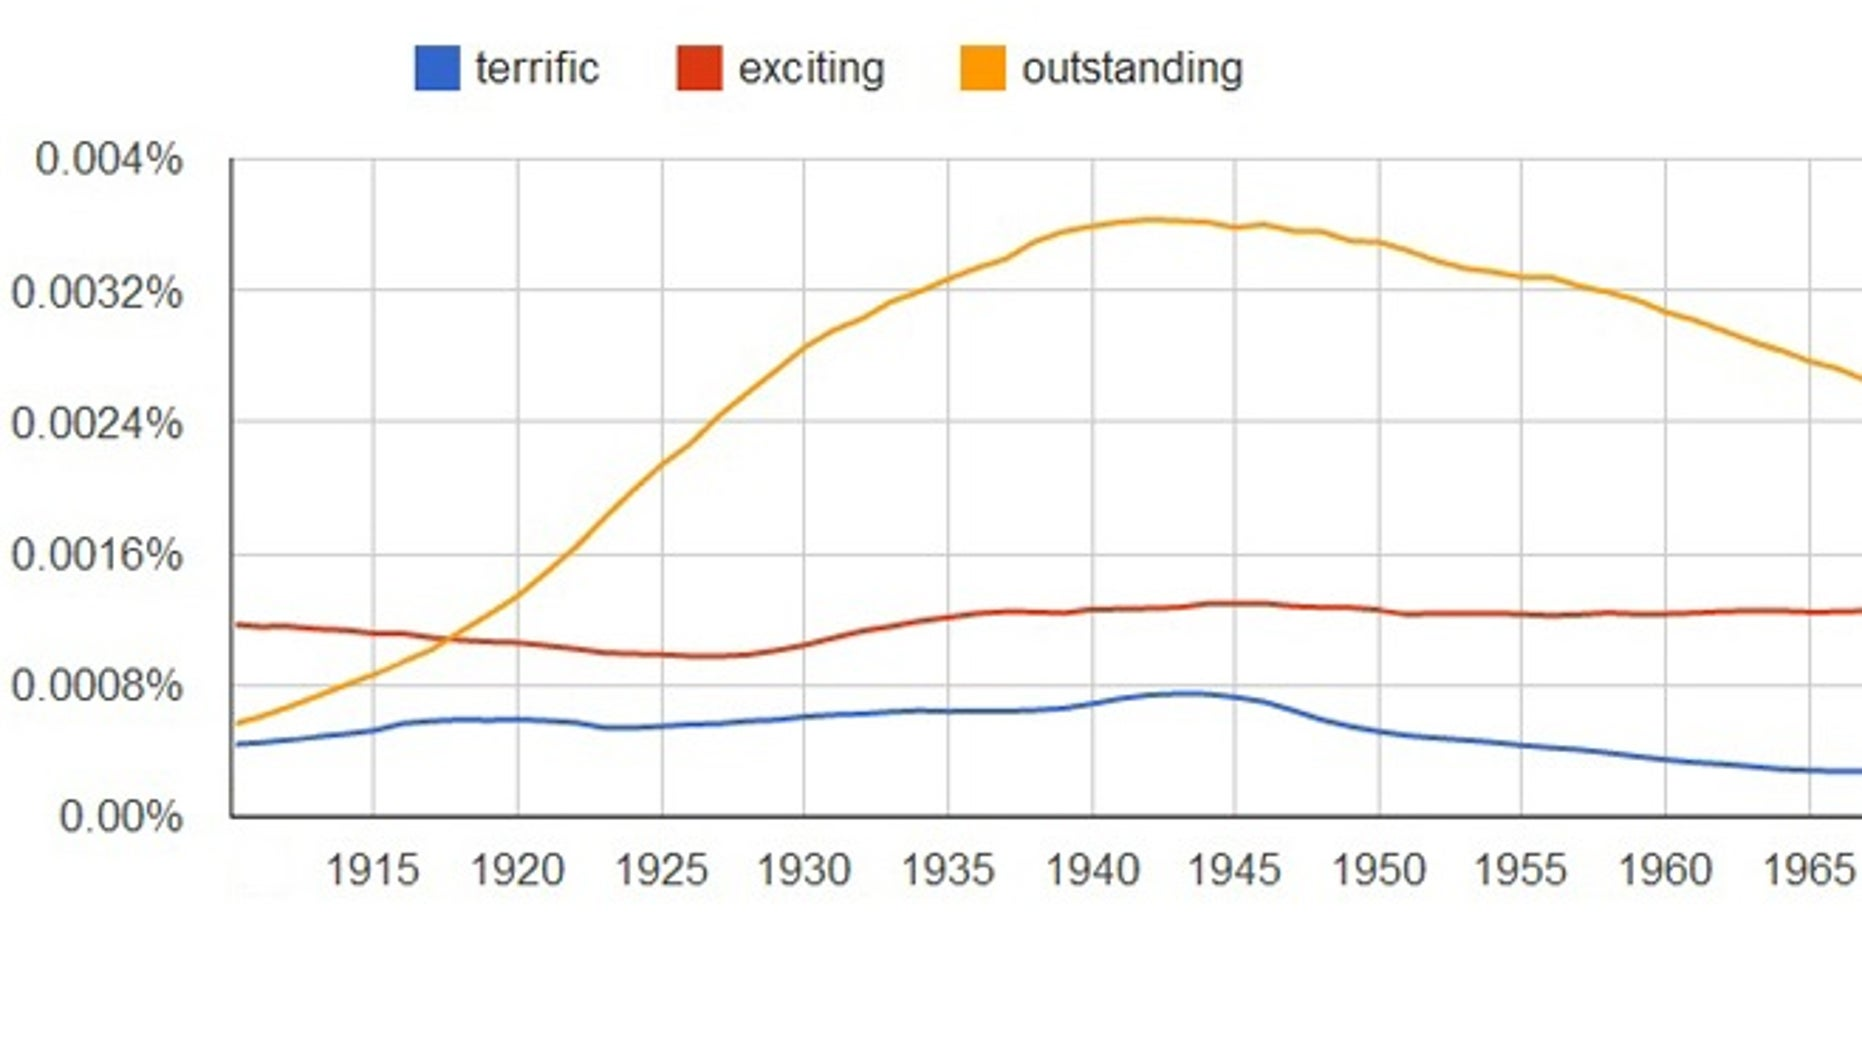 The use of terrific (blue), exciting (red), and outstanding (gold) from 1858-2008.